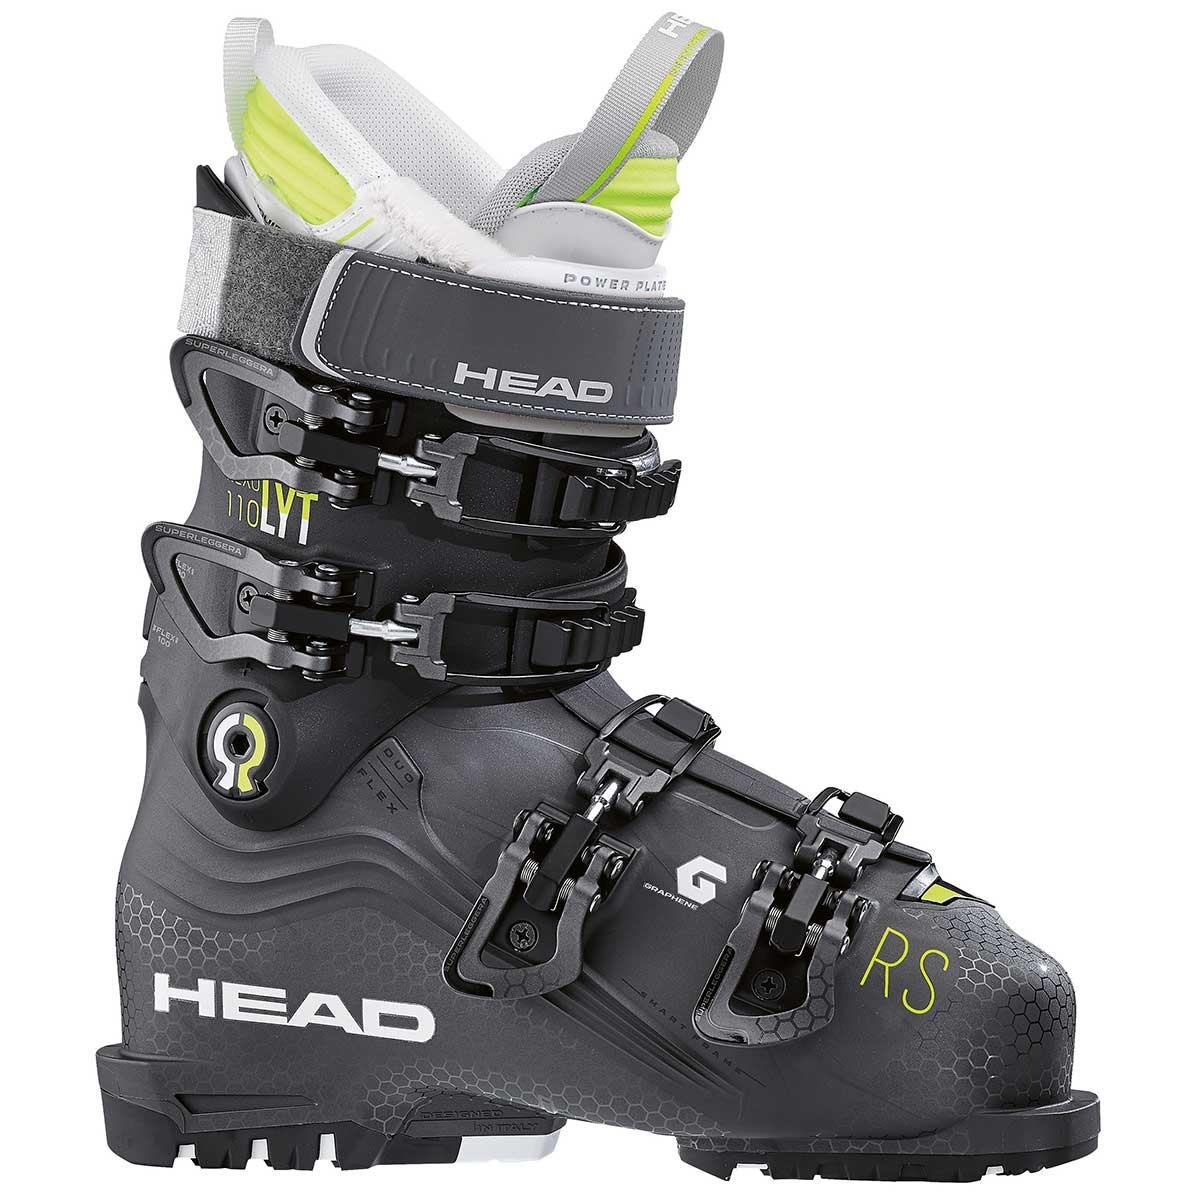 Head NEXO LYT 110 RS W women's ski boot in anthracite and black